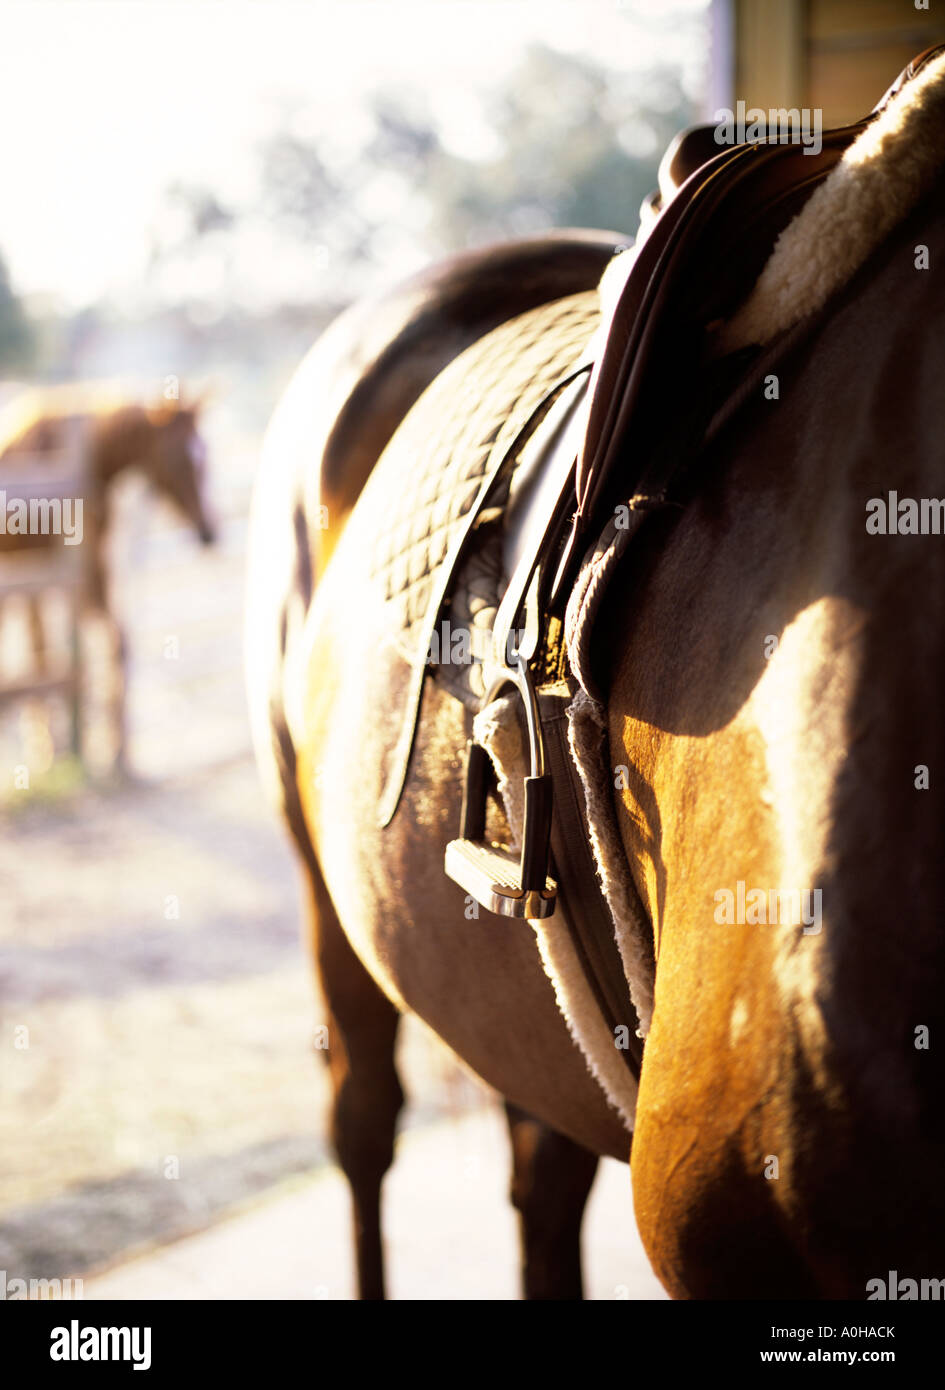 Waiting for a rider, a horse waits in the barn. - Stock Image